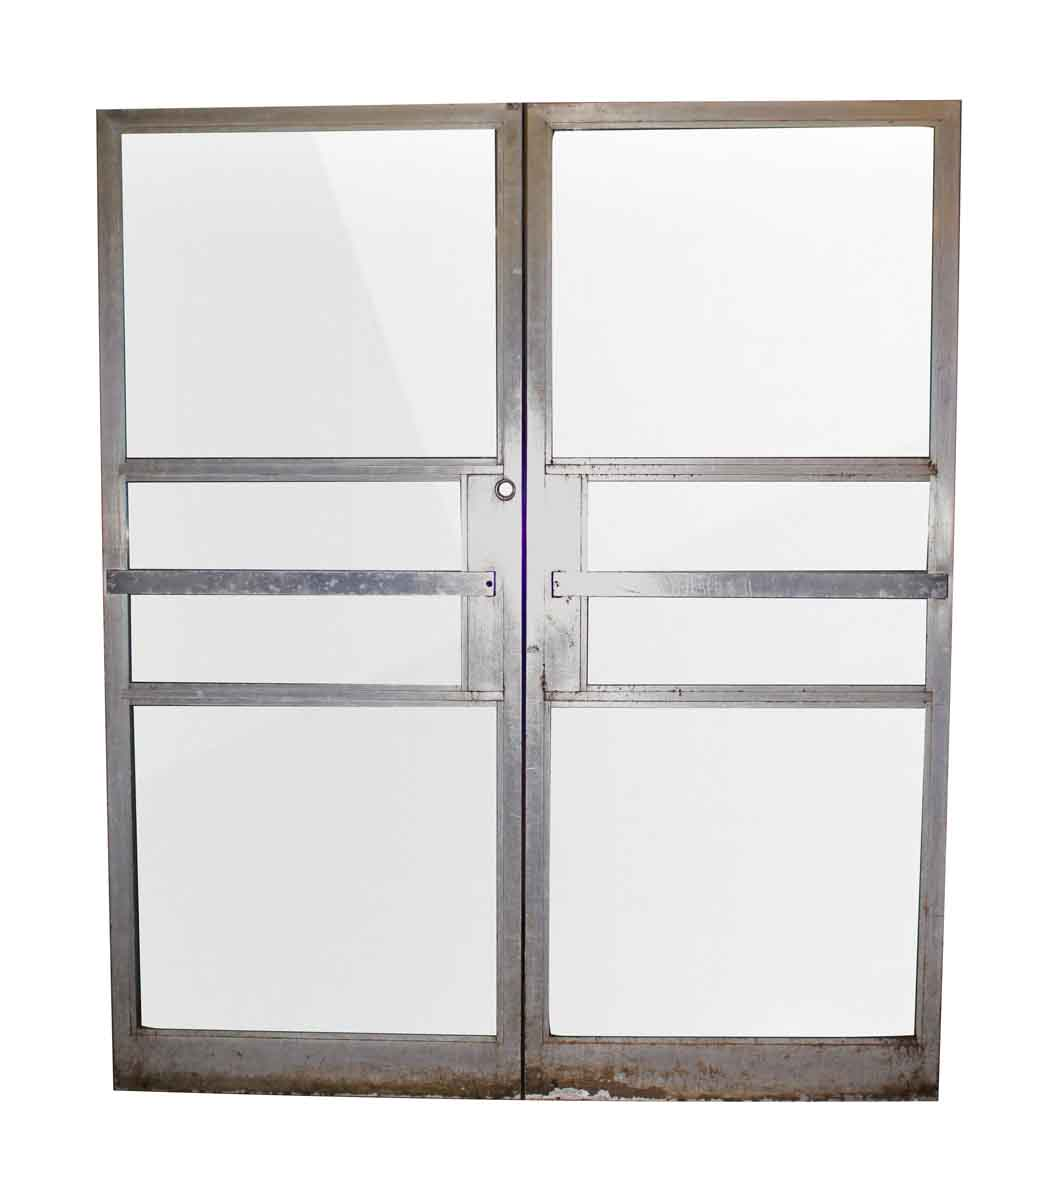 Double commercial glass doors with aluminum frame olde for Double glazed glass panels